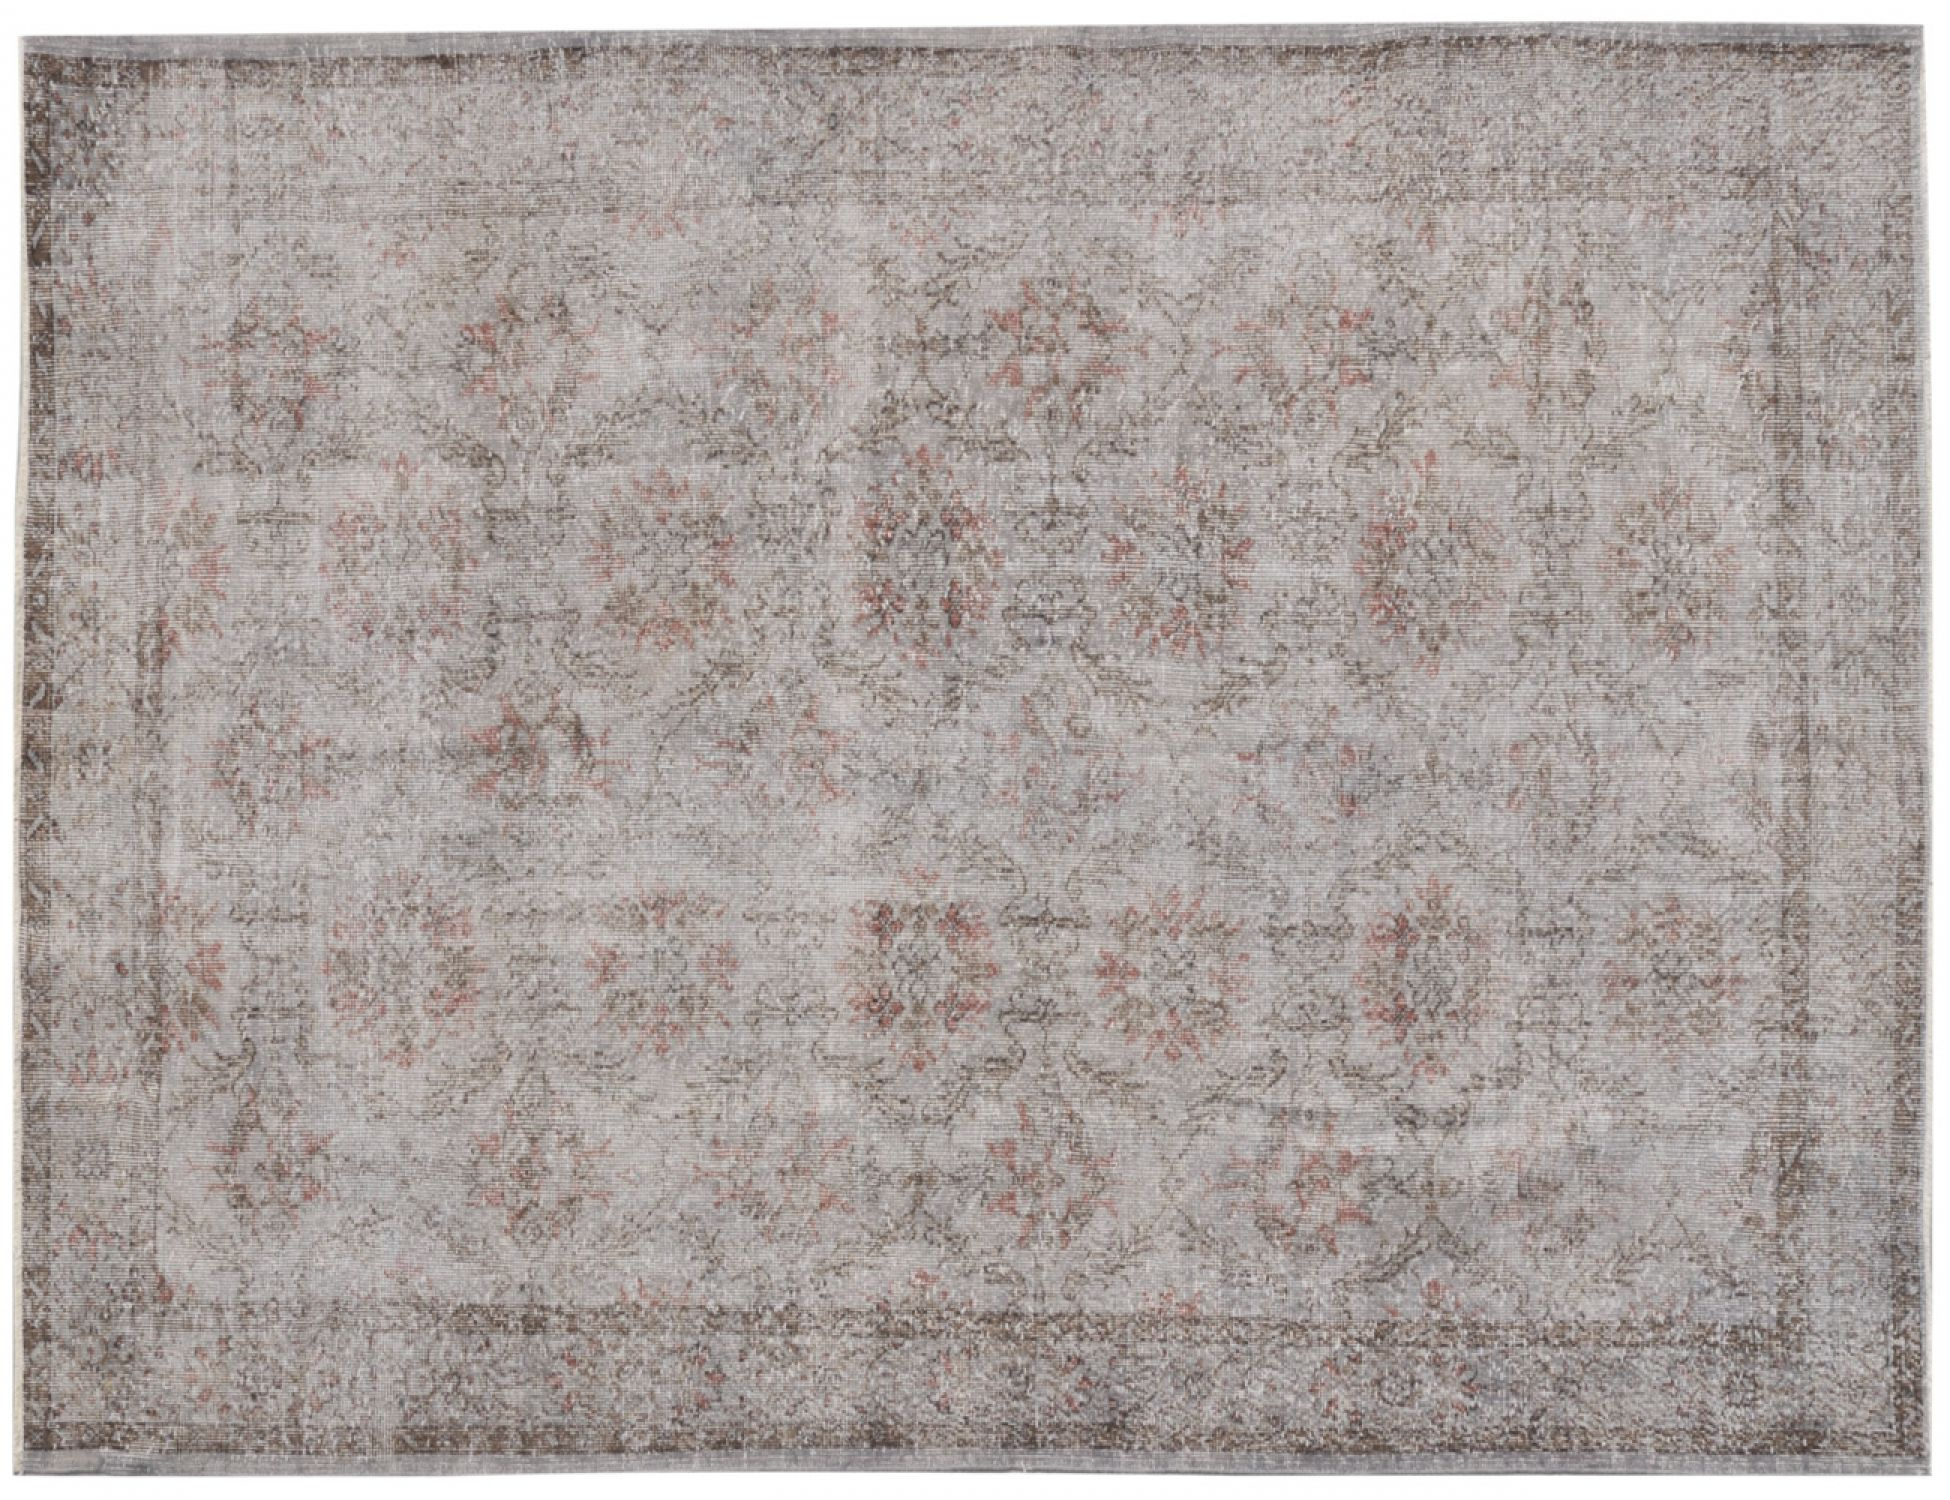 Vintage Carpet  grey <br/>310 x 191 cm